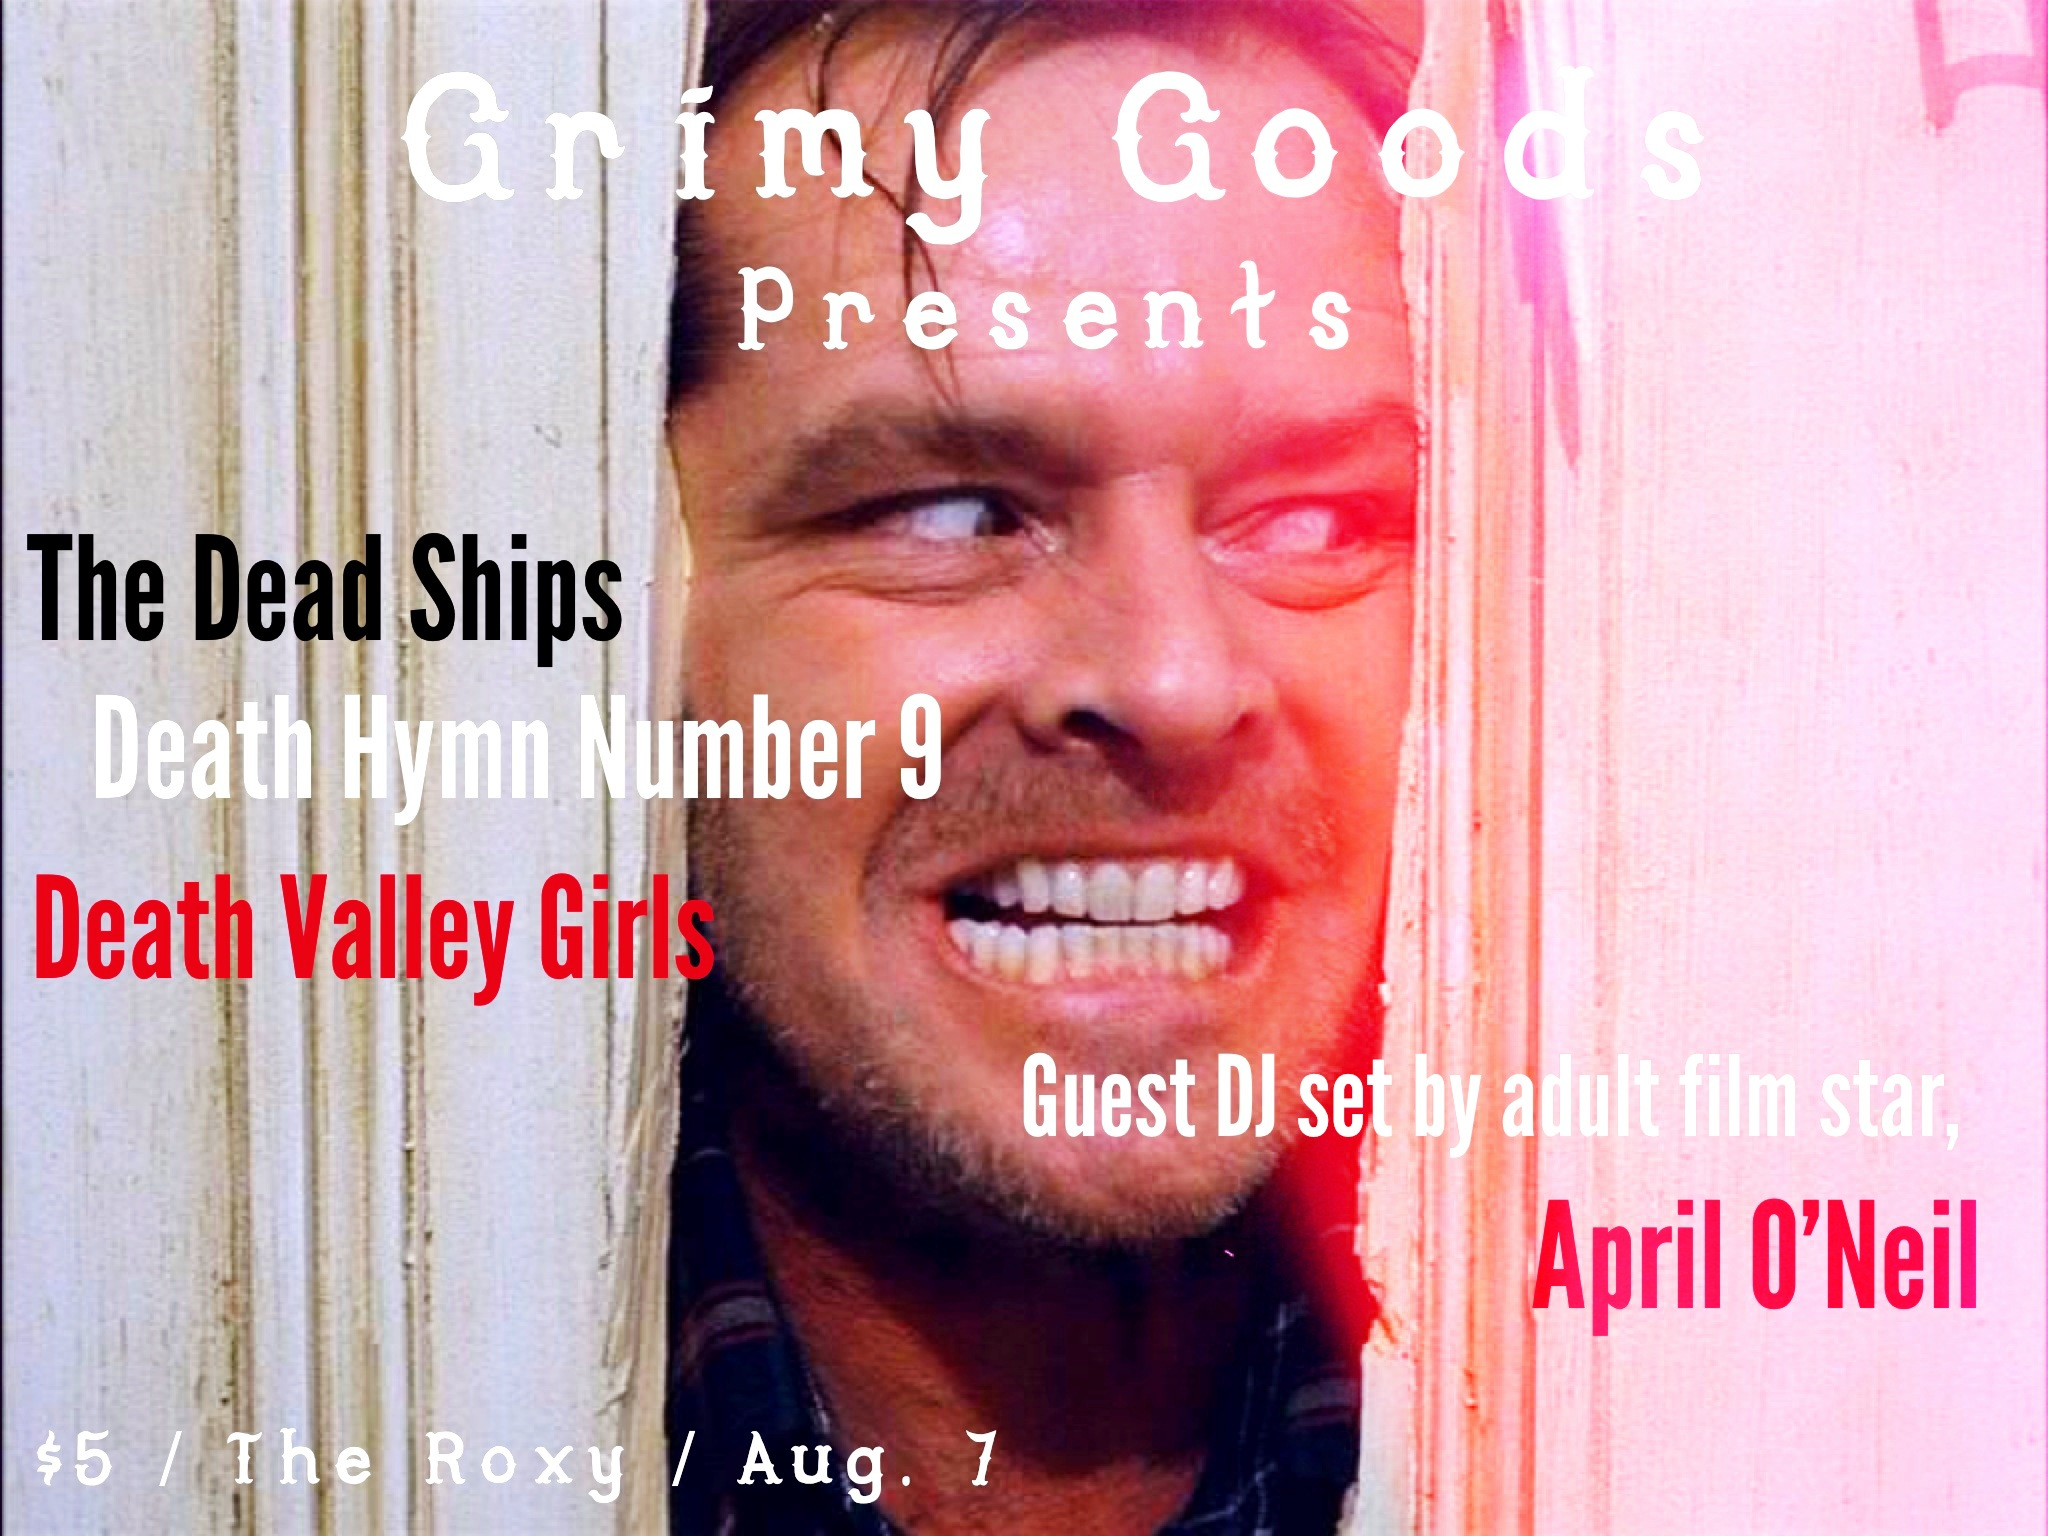 Grimy Goods Presents Aug. 7 The Roxy the dead ships, death hymn number 9, death valley girls